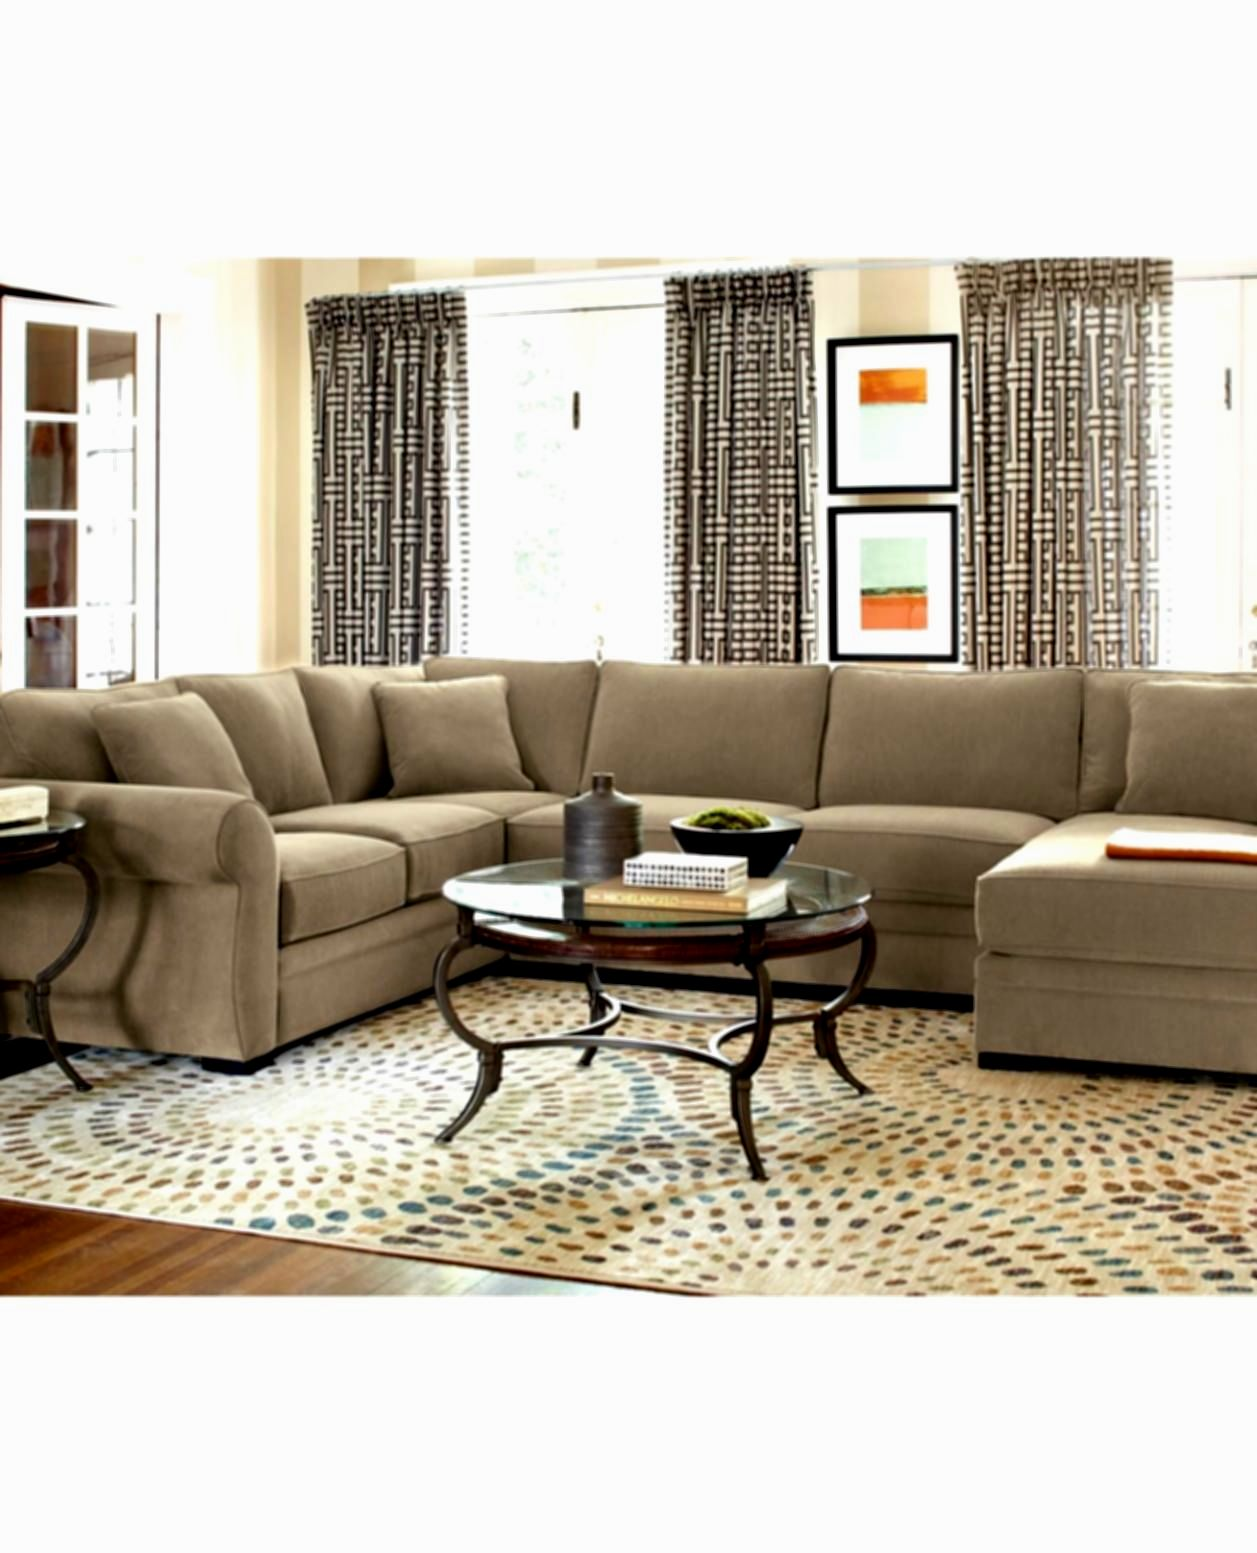 excellent macy's furniture sofa architecture-Sensational Macy's Furniture sofa Layout